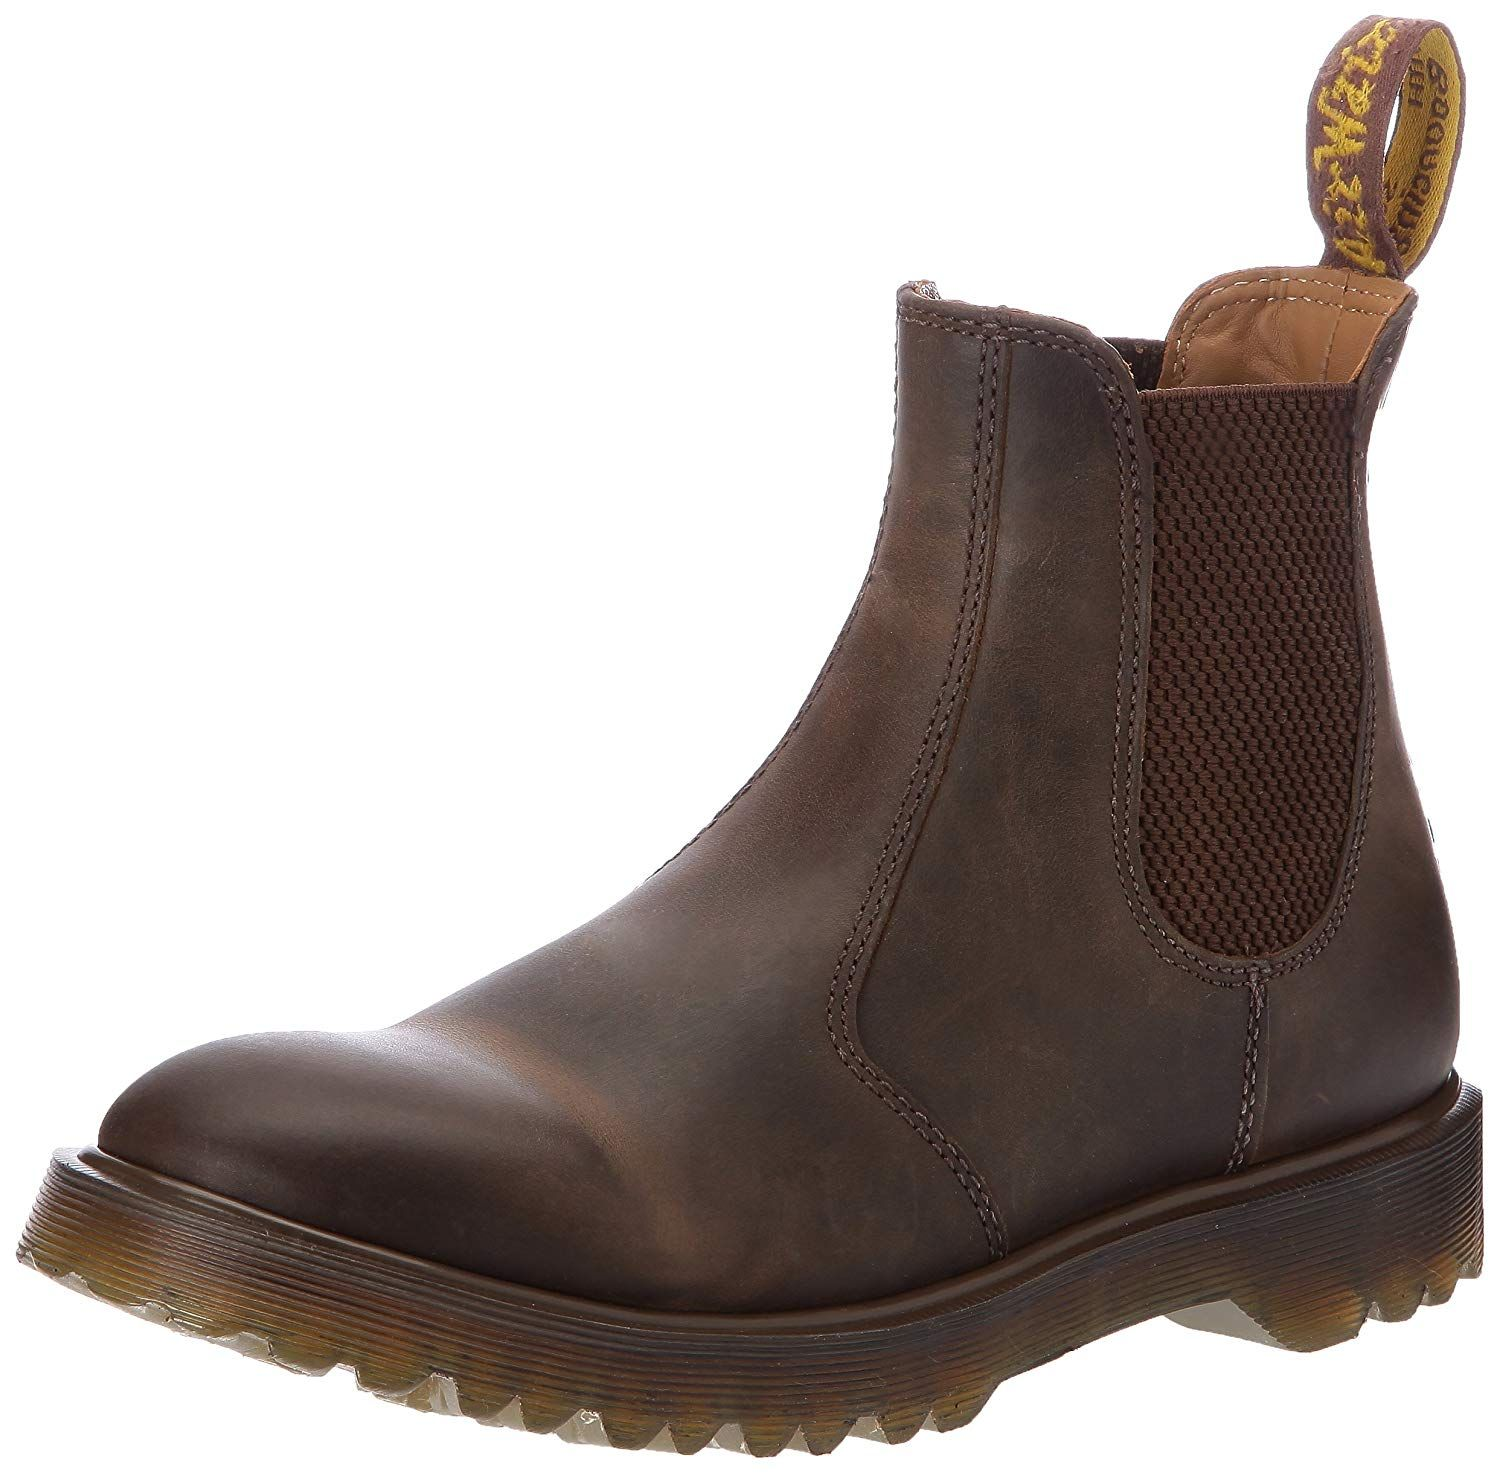 Dr Martens Men S 2976 Boot Wonderful Of Your Presence To Have Dropped By To View Our Photo This Is Our Affiliat Boots Womens Mid Calf Boots Chelsea Boots